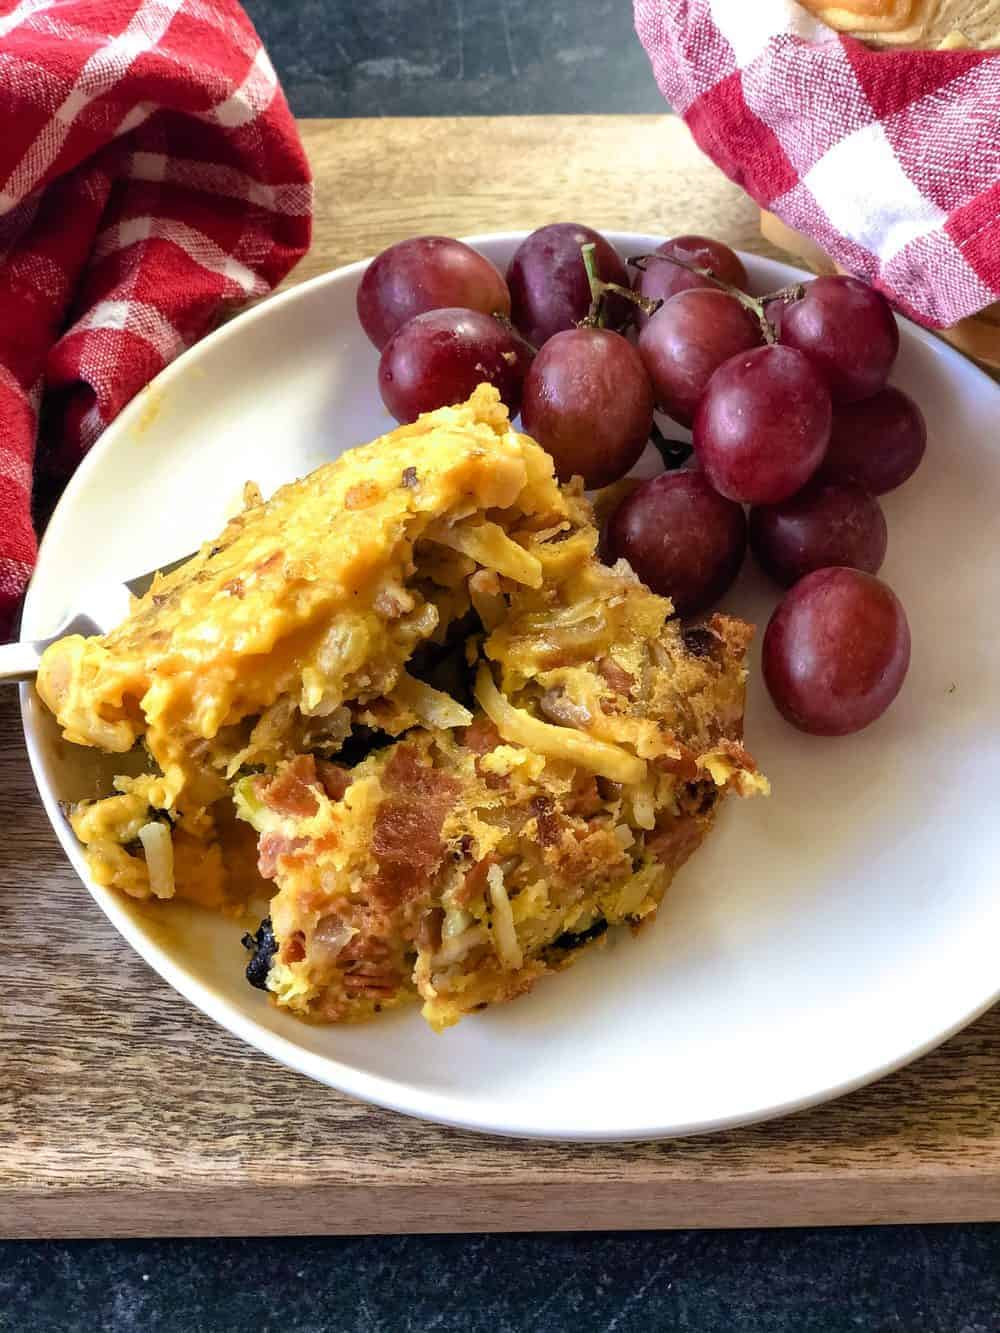 hash brown casserole on plate with grapes